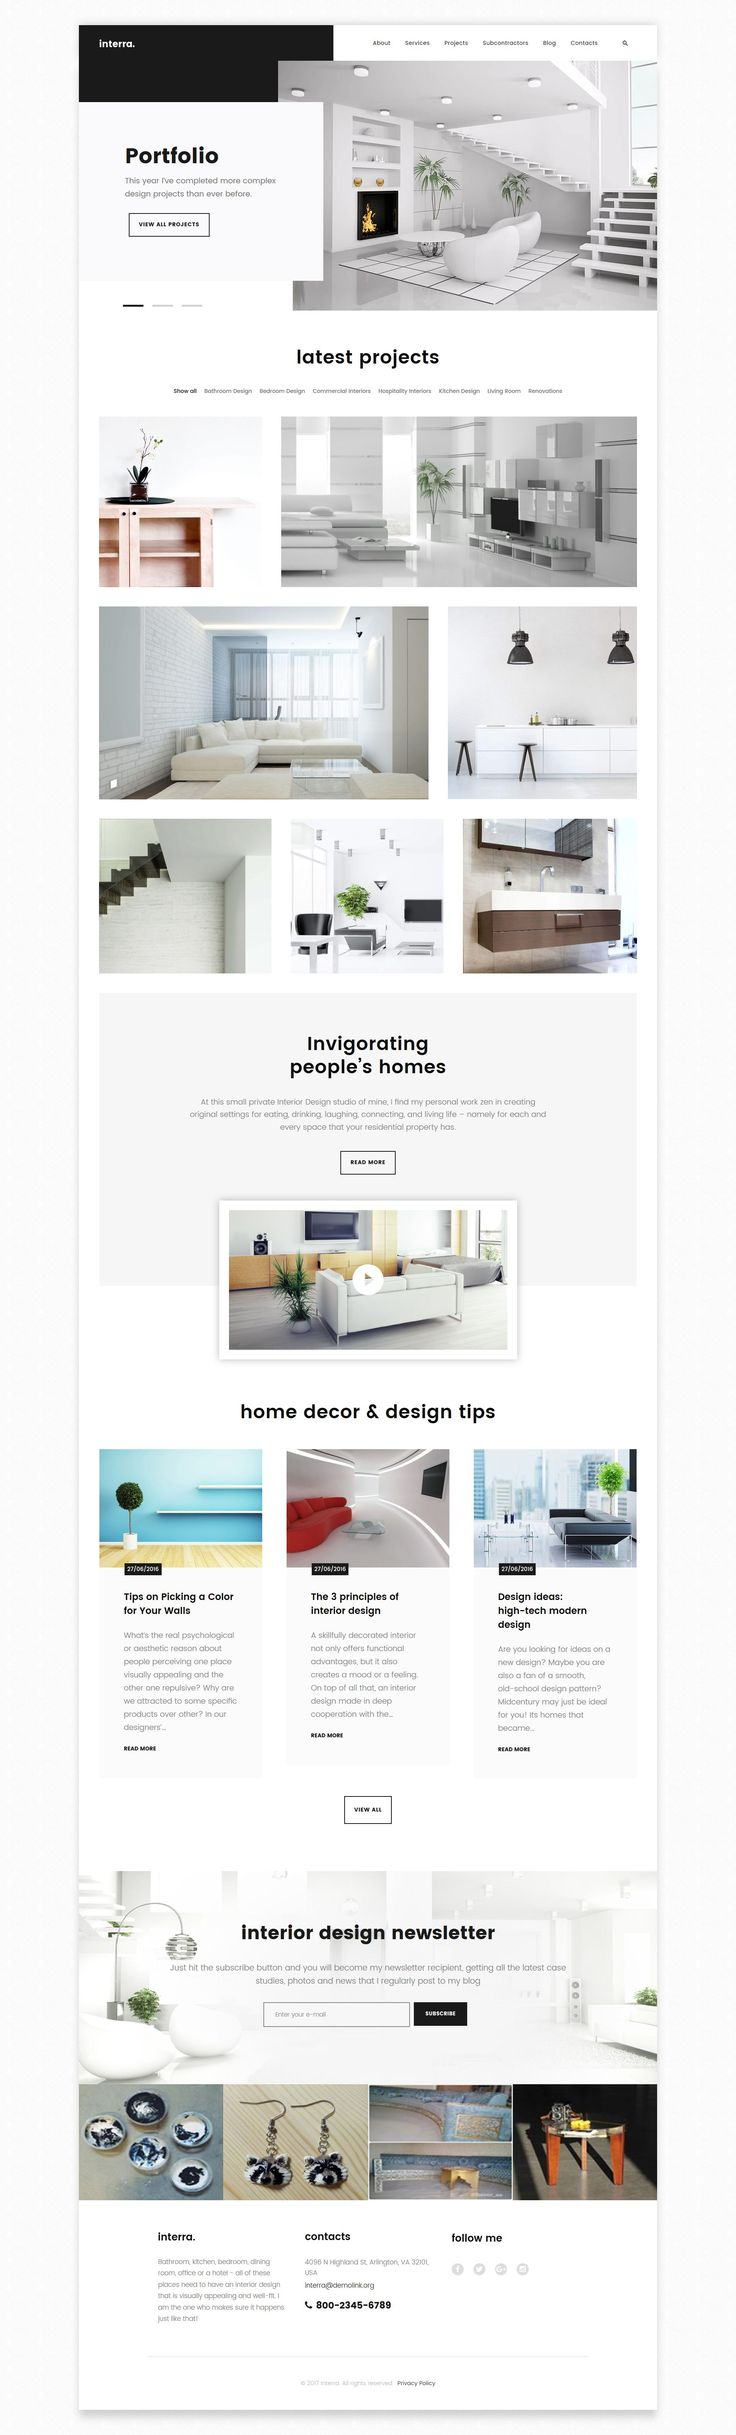 Interra - Interior Designer Portfolio WordPress Theme #62042 - https://www.templatemonster.com/wordpress-themes/62042.html